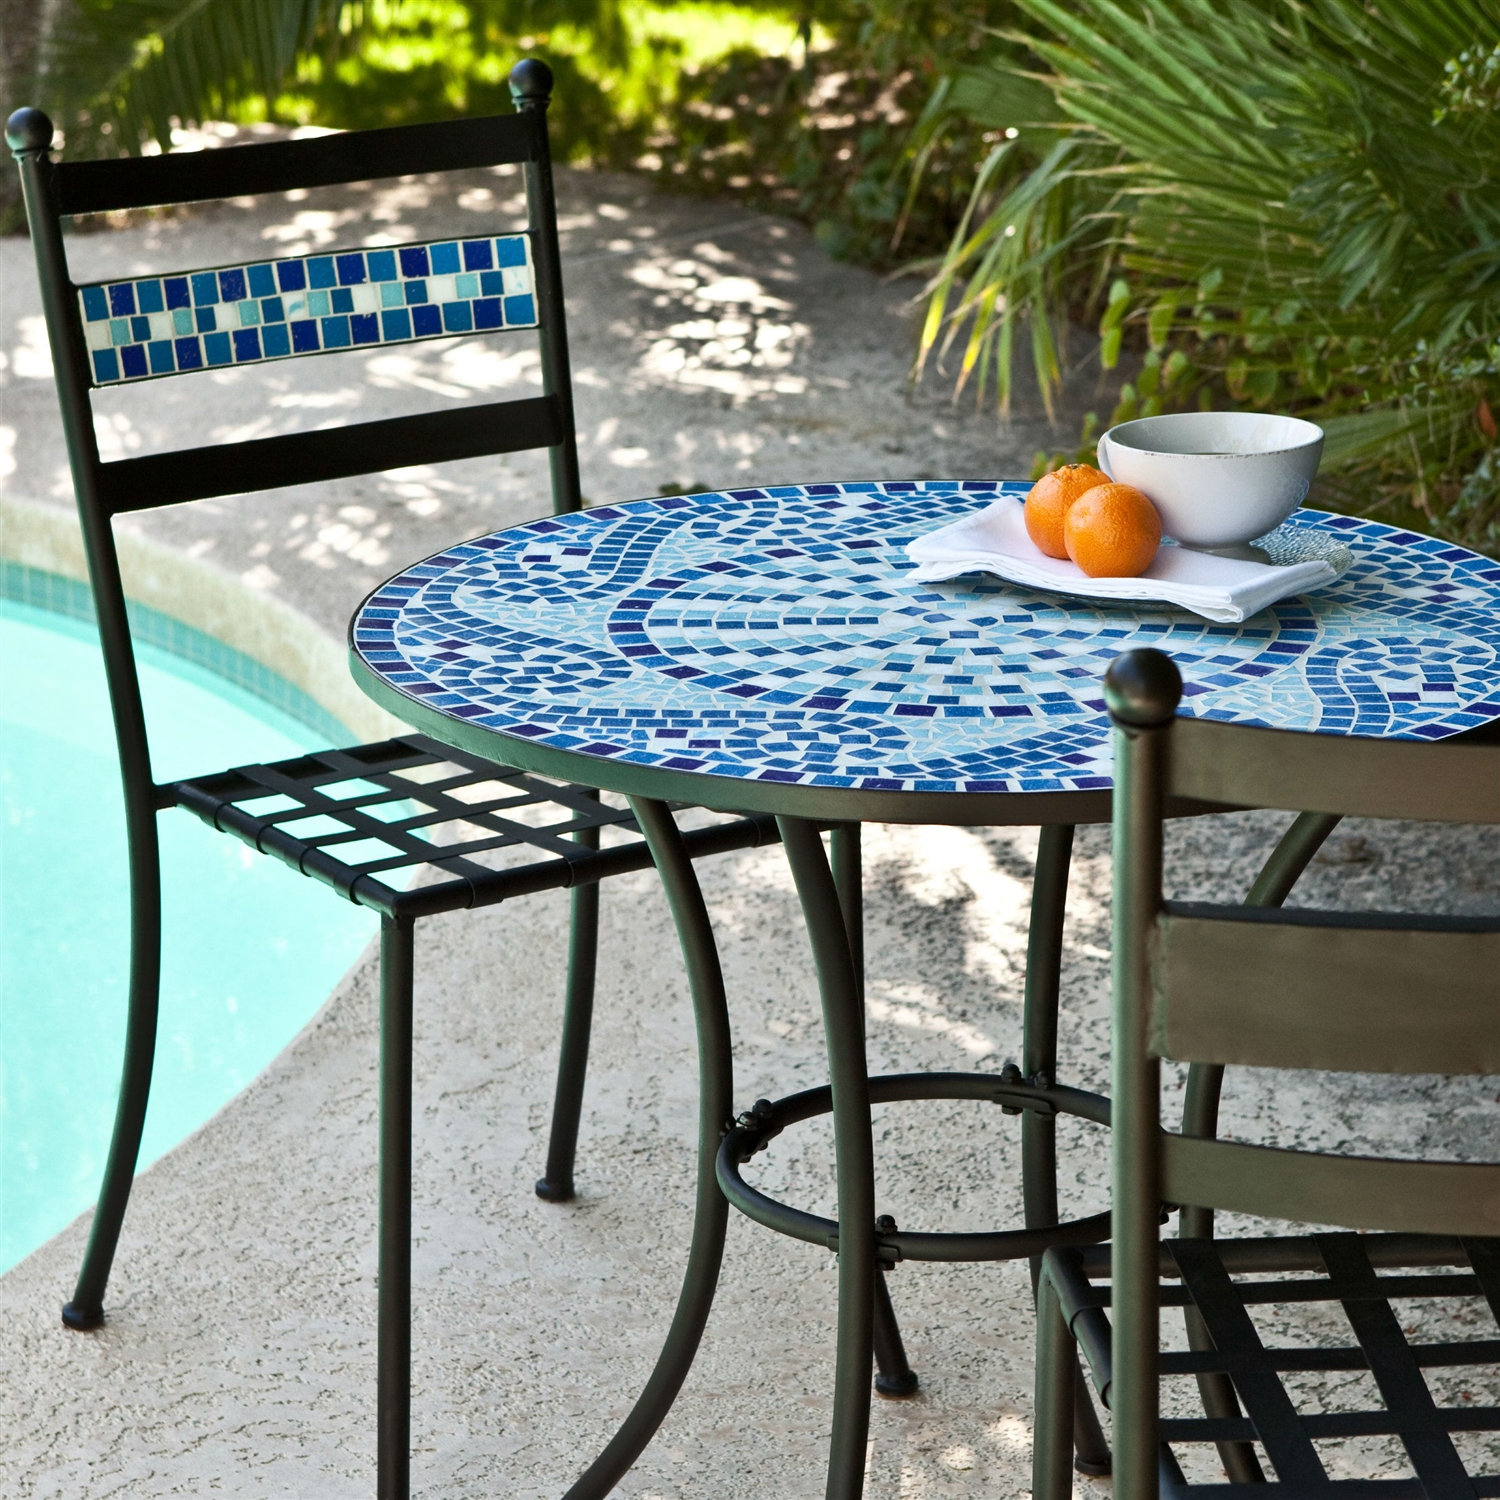 Outdoor 3-Piece Aqua Blue Mosaic Tiles Patio Furniture Bistro Set |  Fastfurnishings.com - Outdoor 3-Piece Aqua Blue Mosaic Tiles Patio Furniture Bistro Set